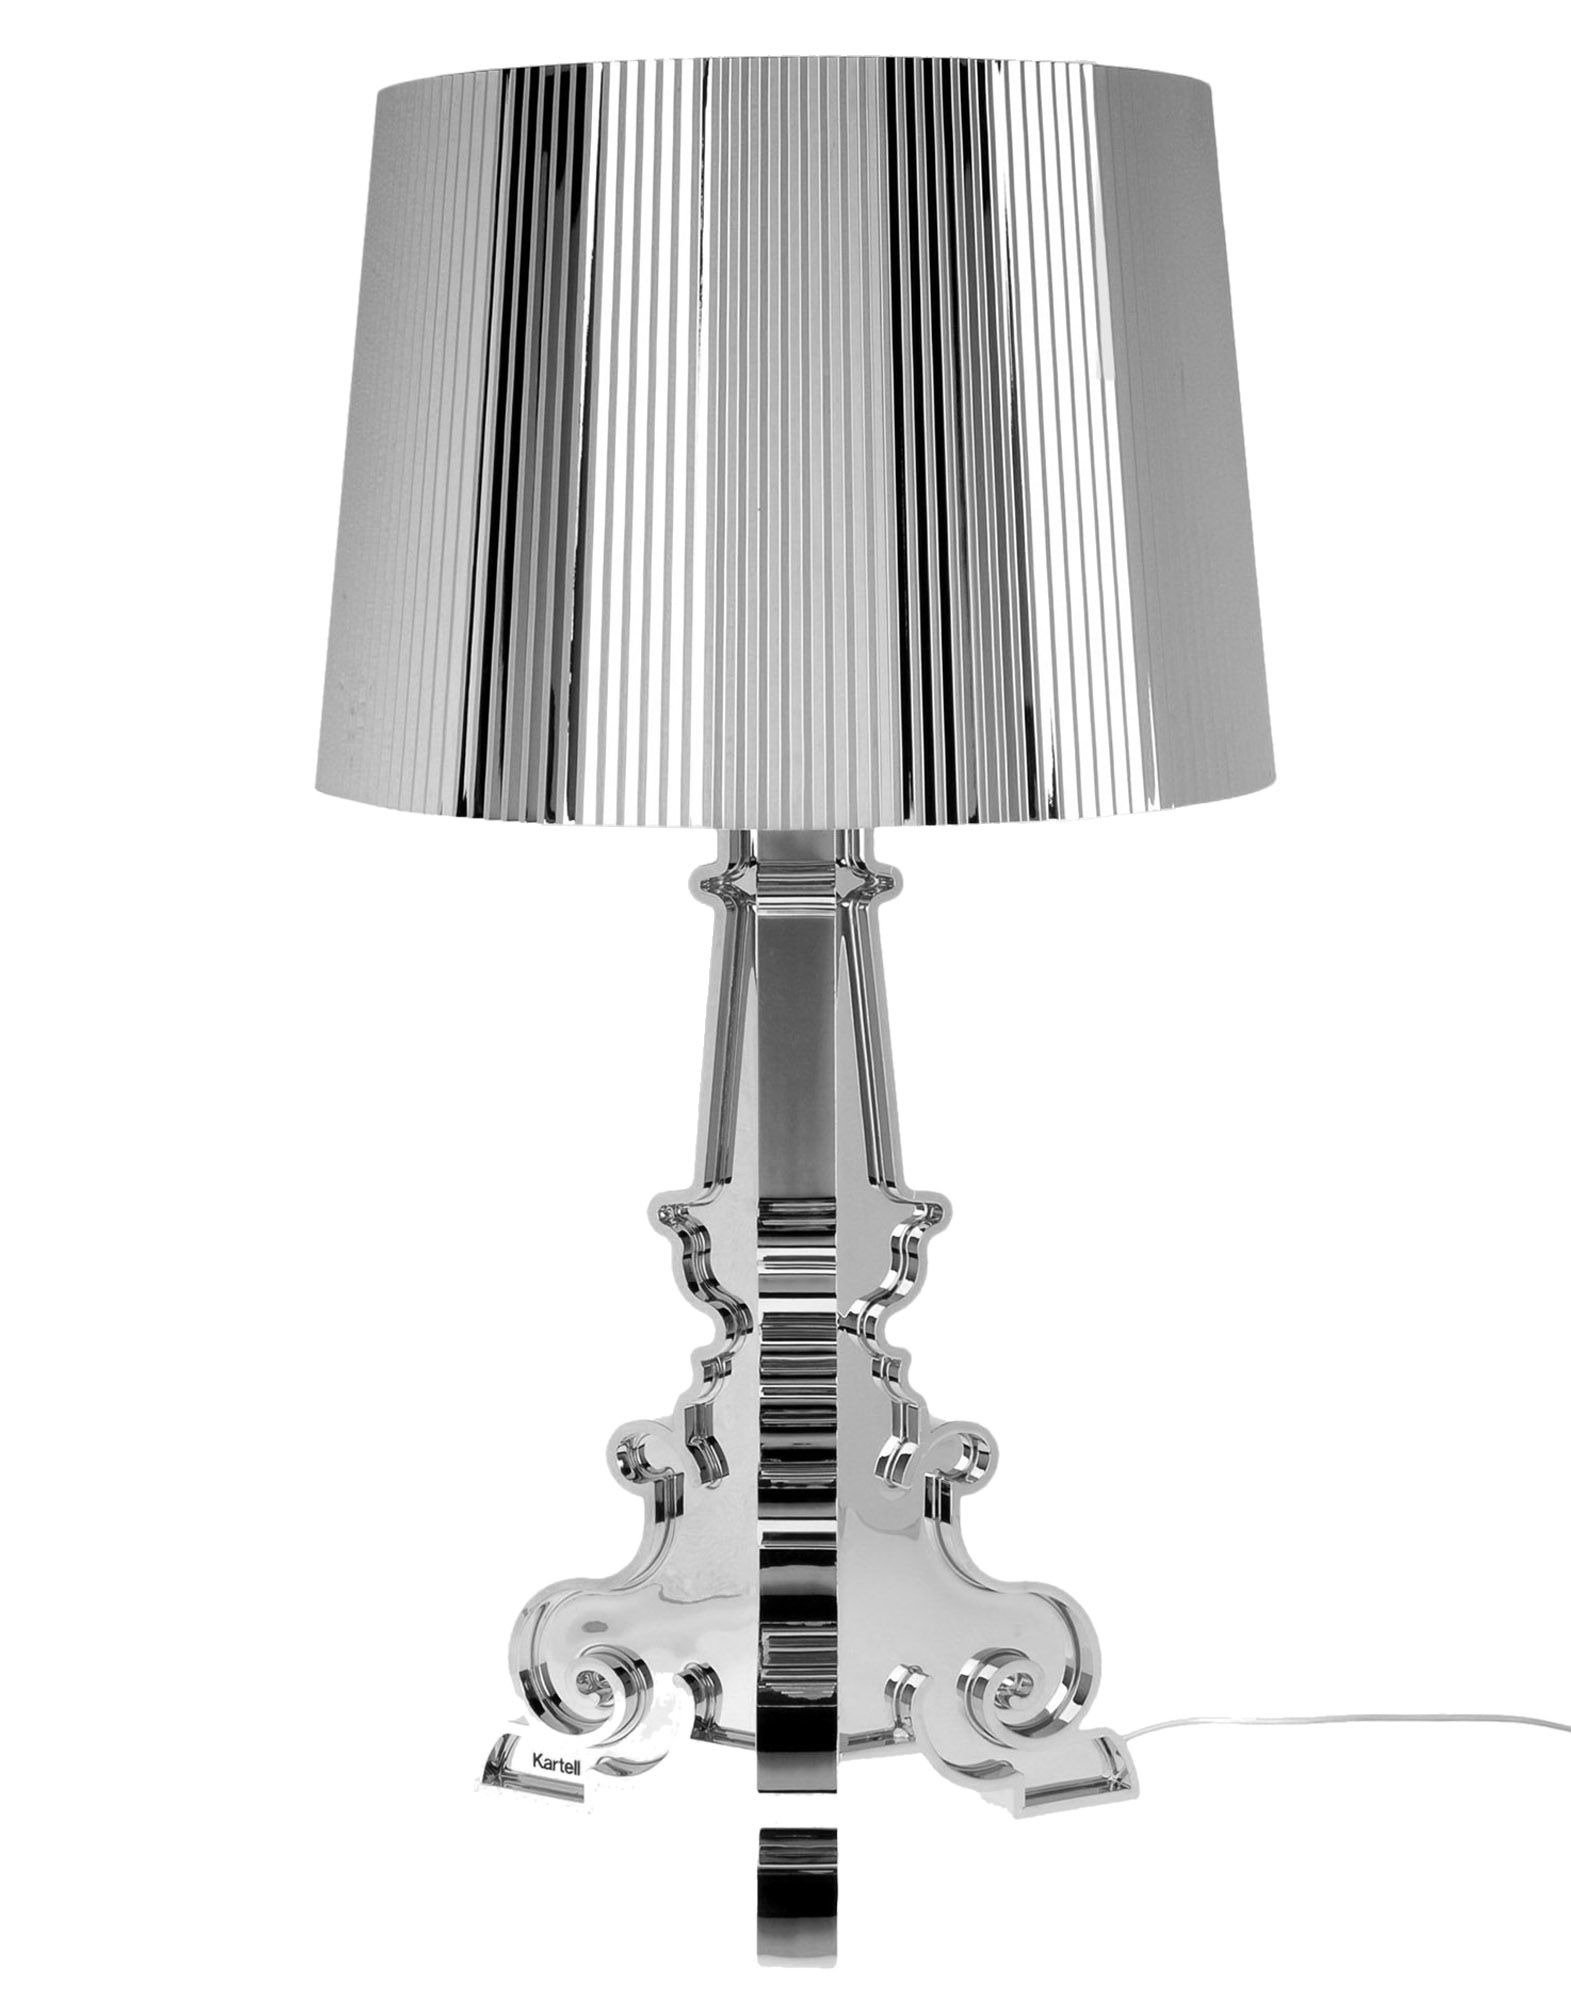 KARTELL Настольная лампа modern led ceiling light for living room lamp fixtures home indoor lighting luminaria lustres de sala teto